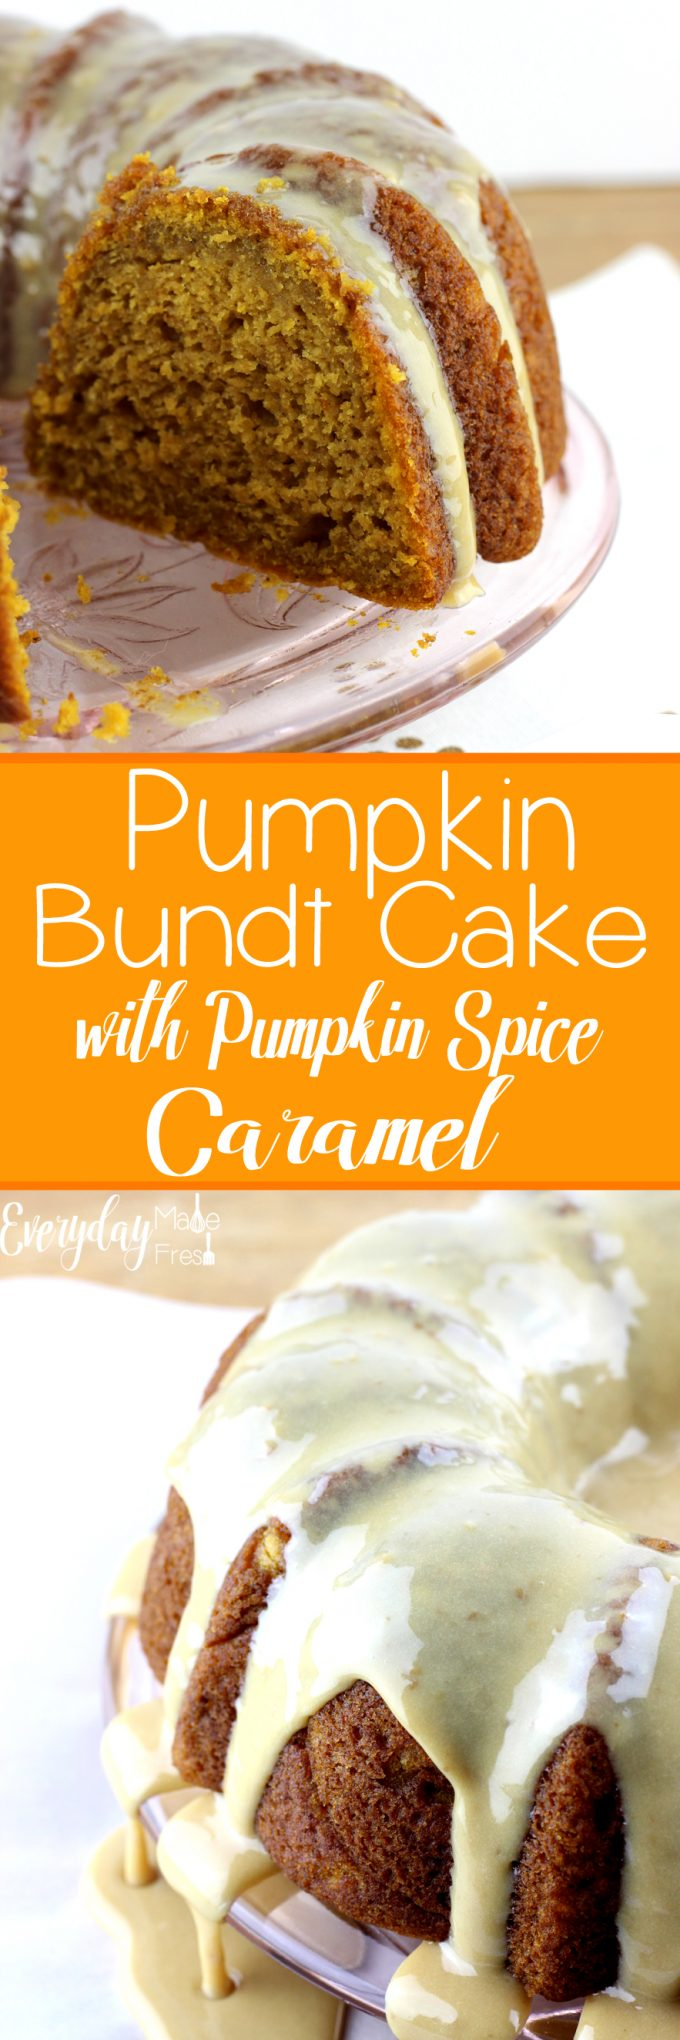 This Pumpkin Bundt Cake with Pumpkin Spice Caramel is so moist and packed with flavor. The pumpkin spice caramel is the perfect finishing touch for this fall favorite. | Everydaymadefresh.com